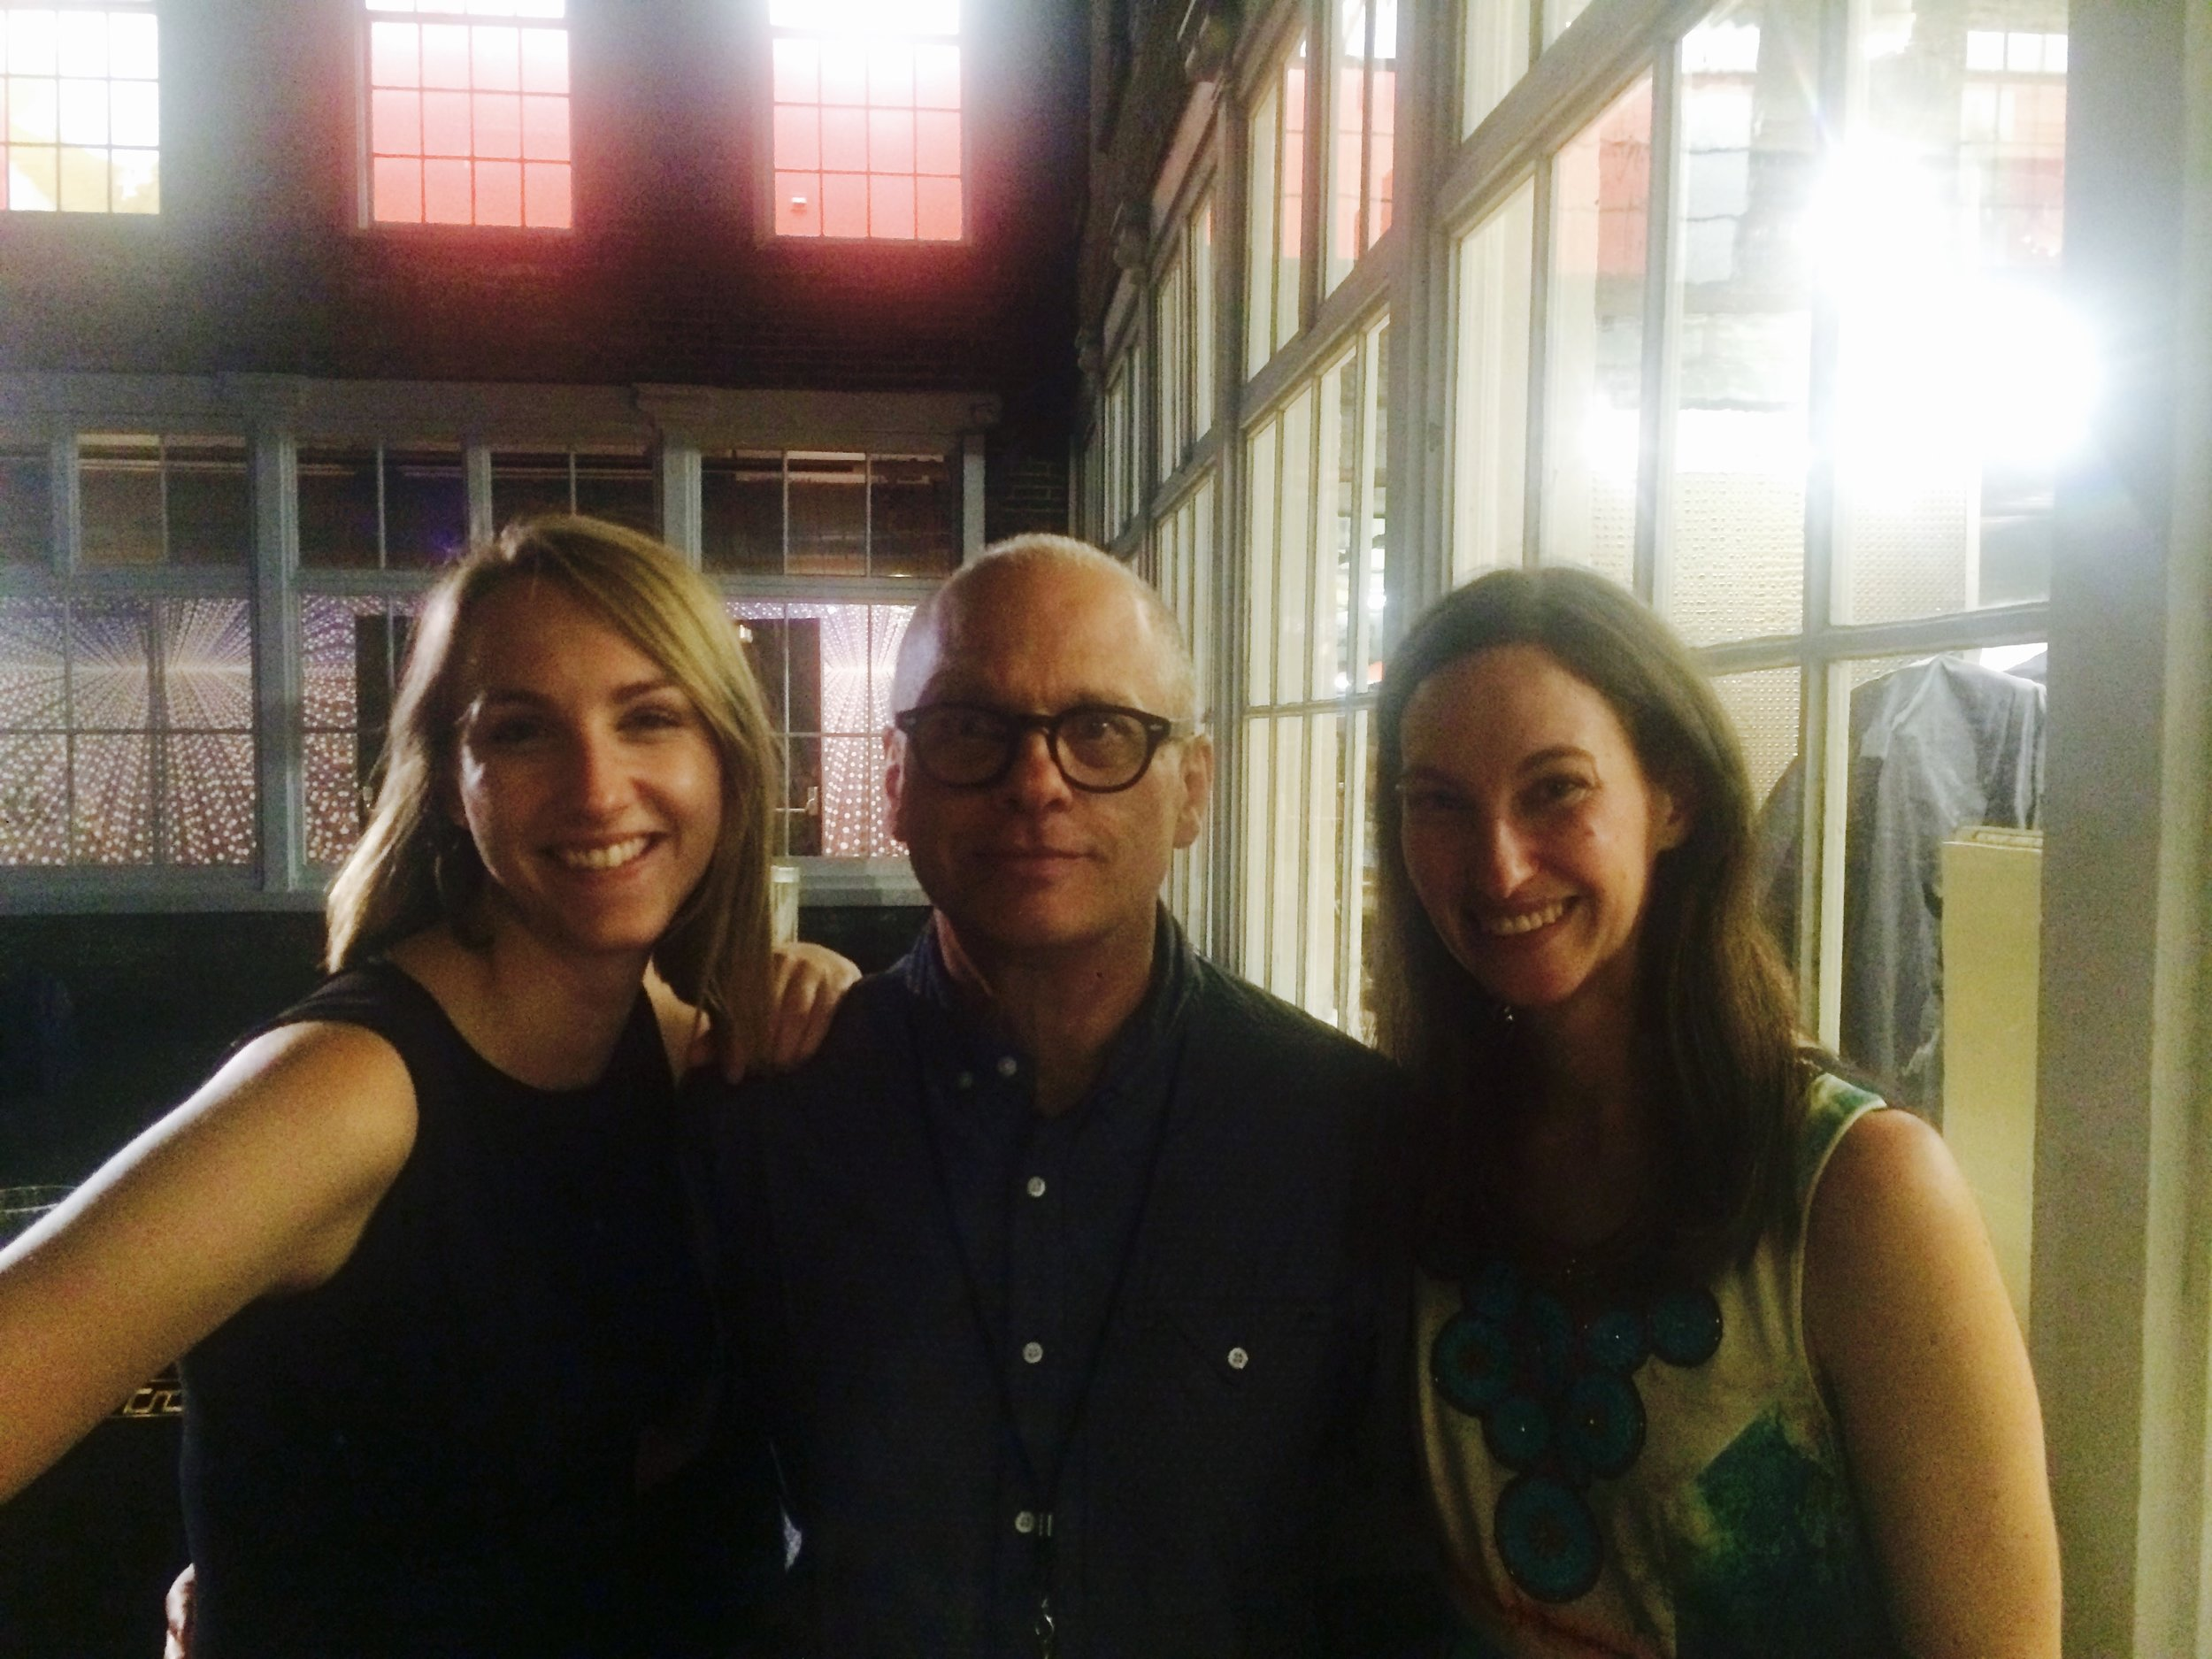 Tamara and Kaylie with David Lang, July 2015